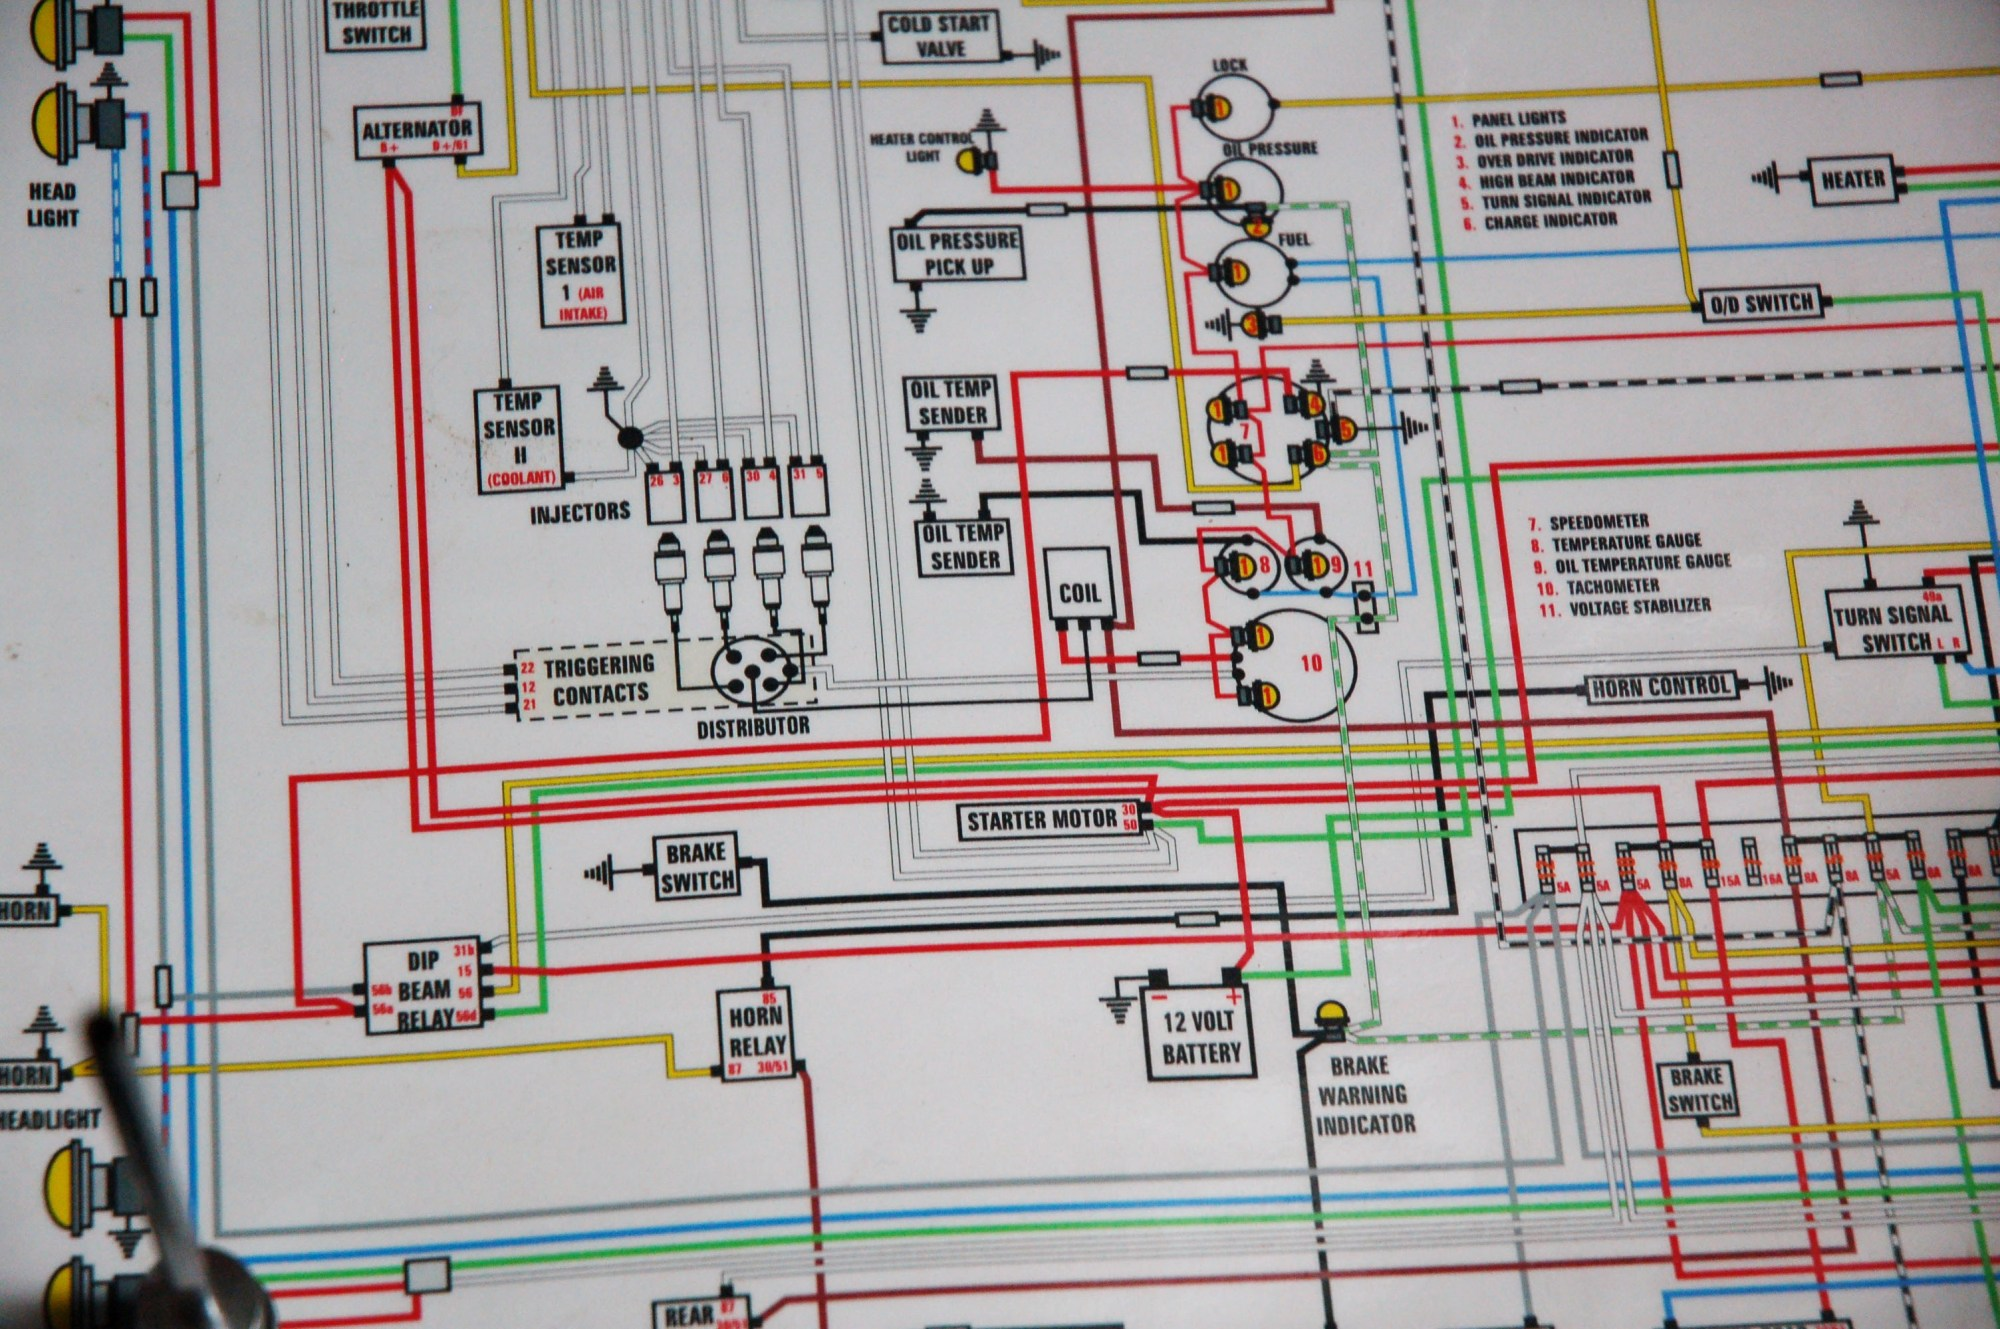 hight resolution of in our garage installing a new wiring harness hemmings dailycolor wiring diagram from colorwiringdiagrams com